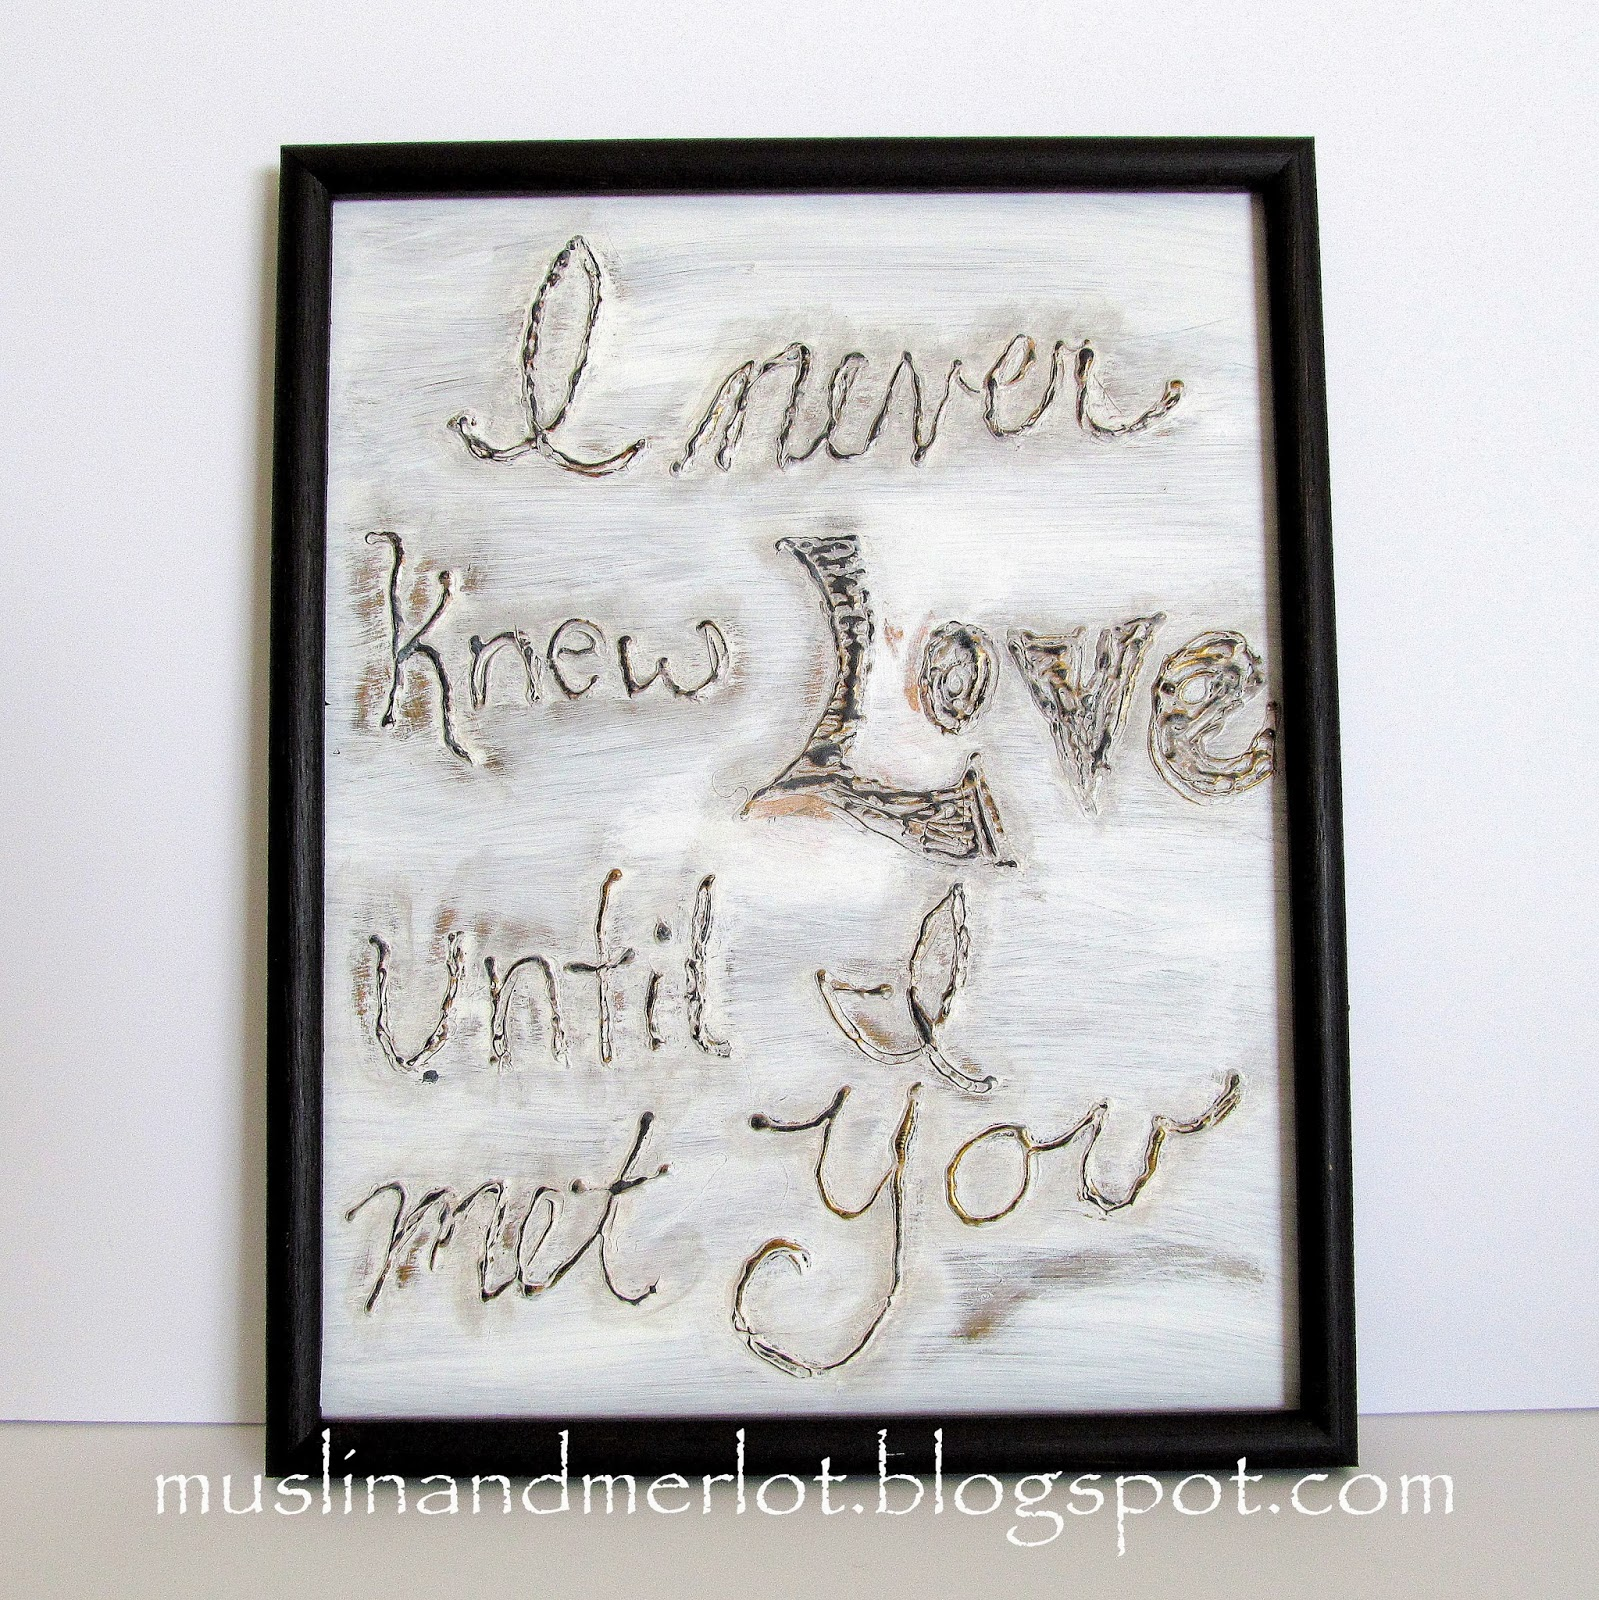 framed glass panel saying I never knew love until i met you, using glue gun and paint